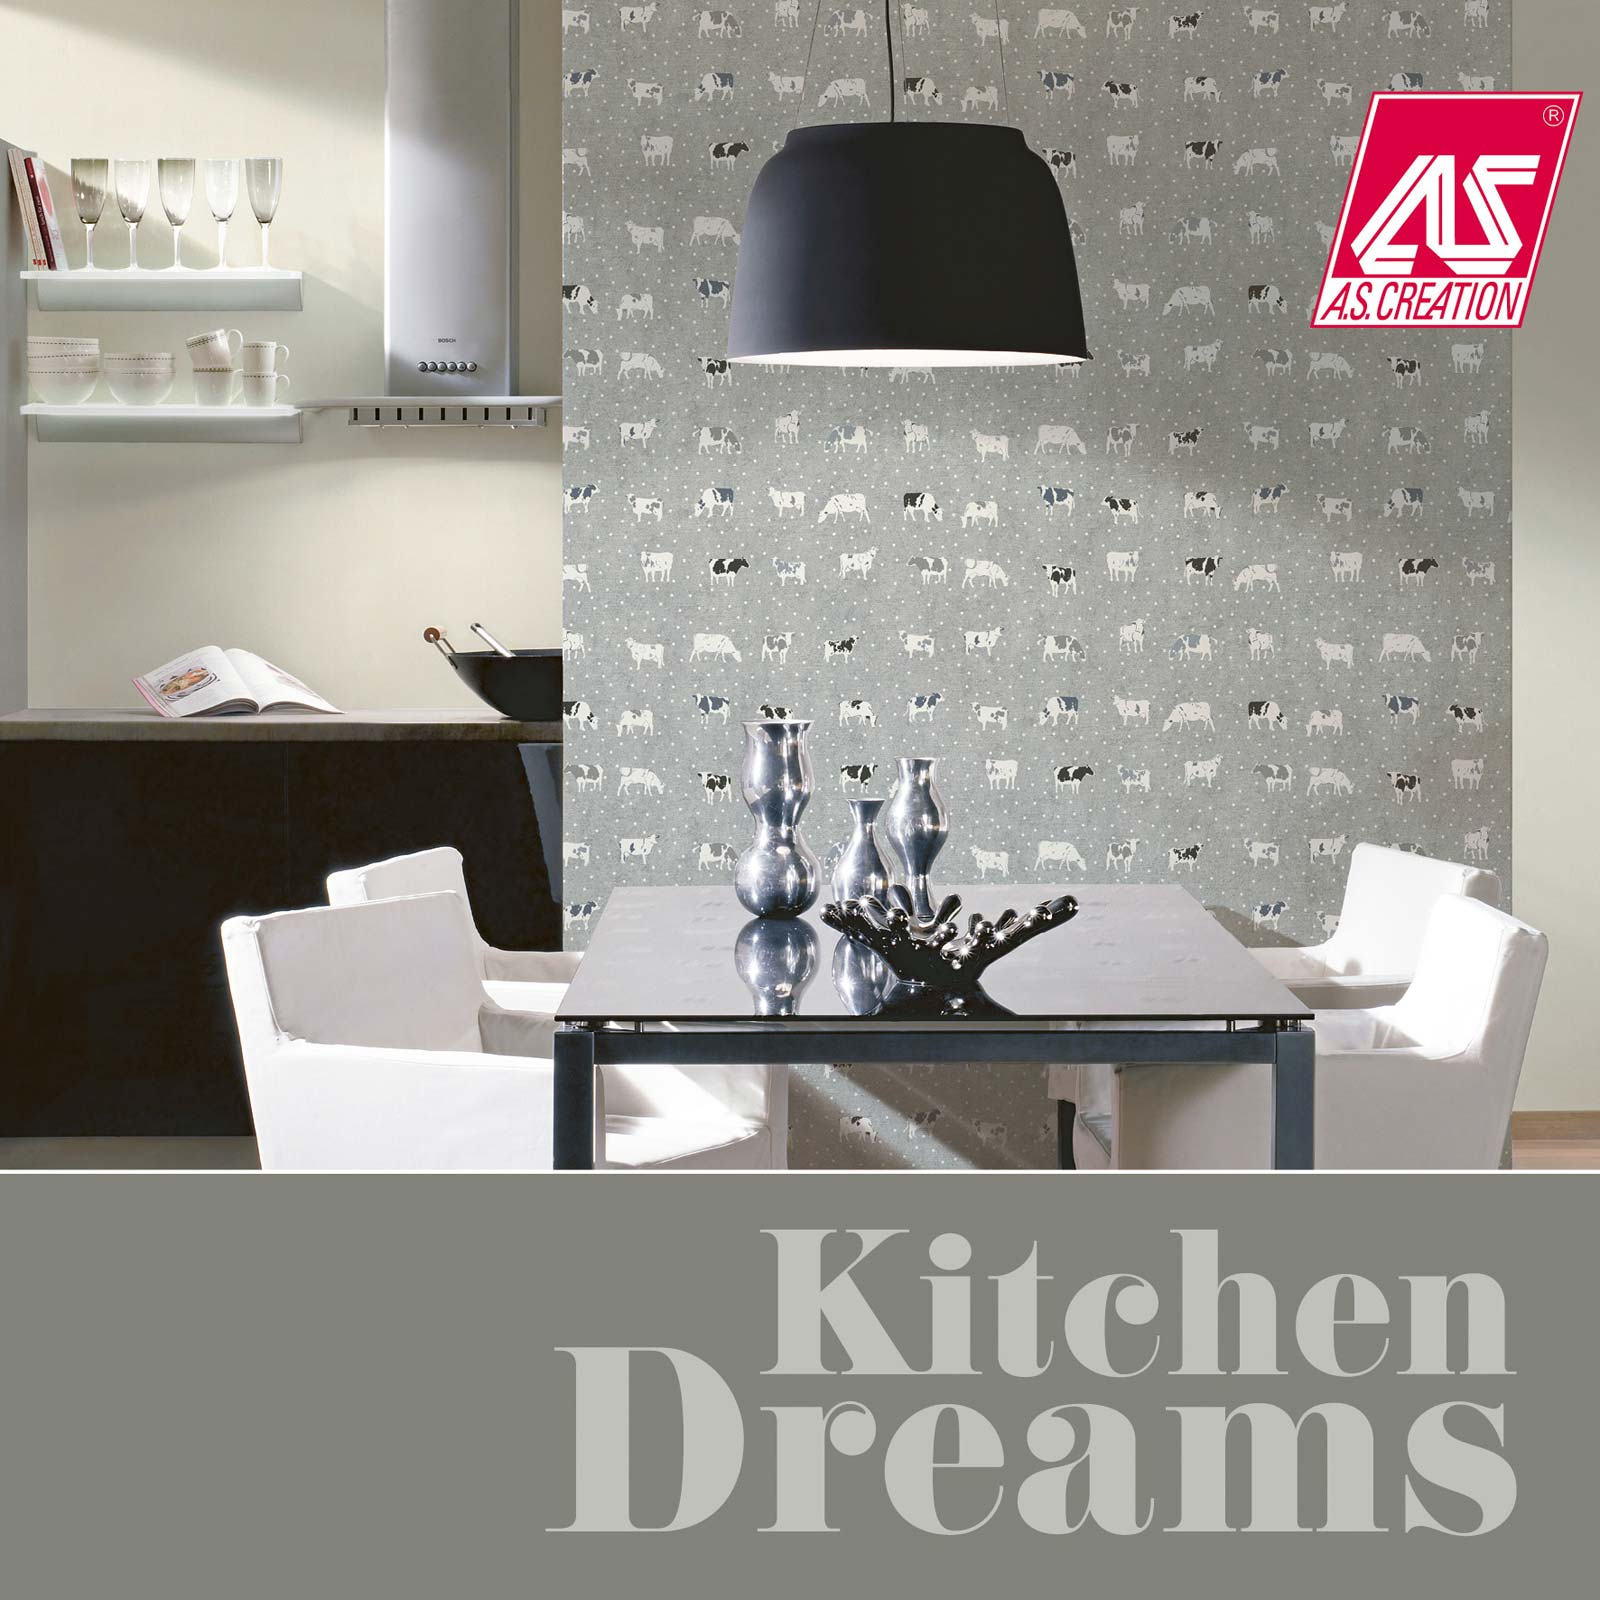 A.S. Création Kitchen Dreams